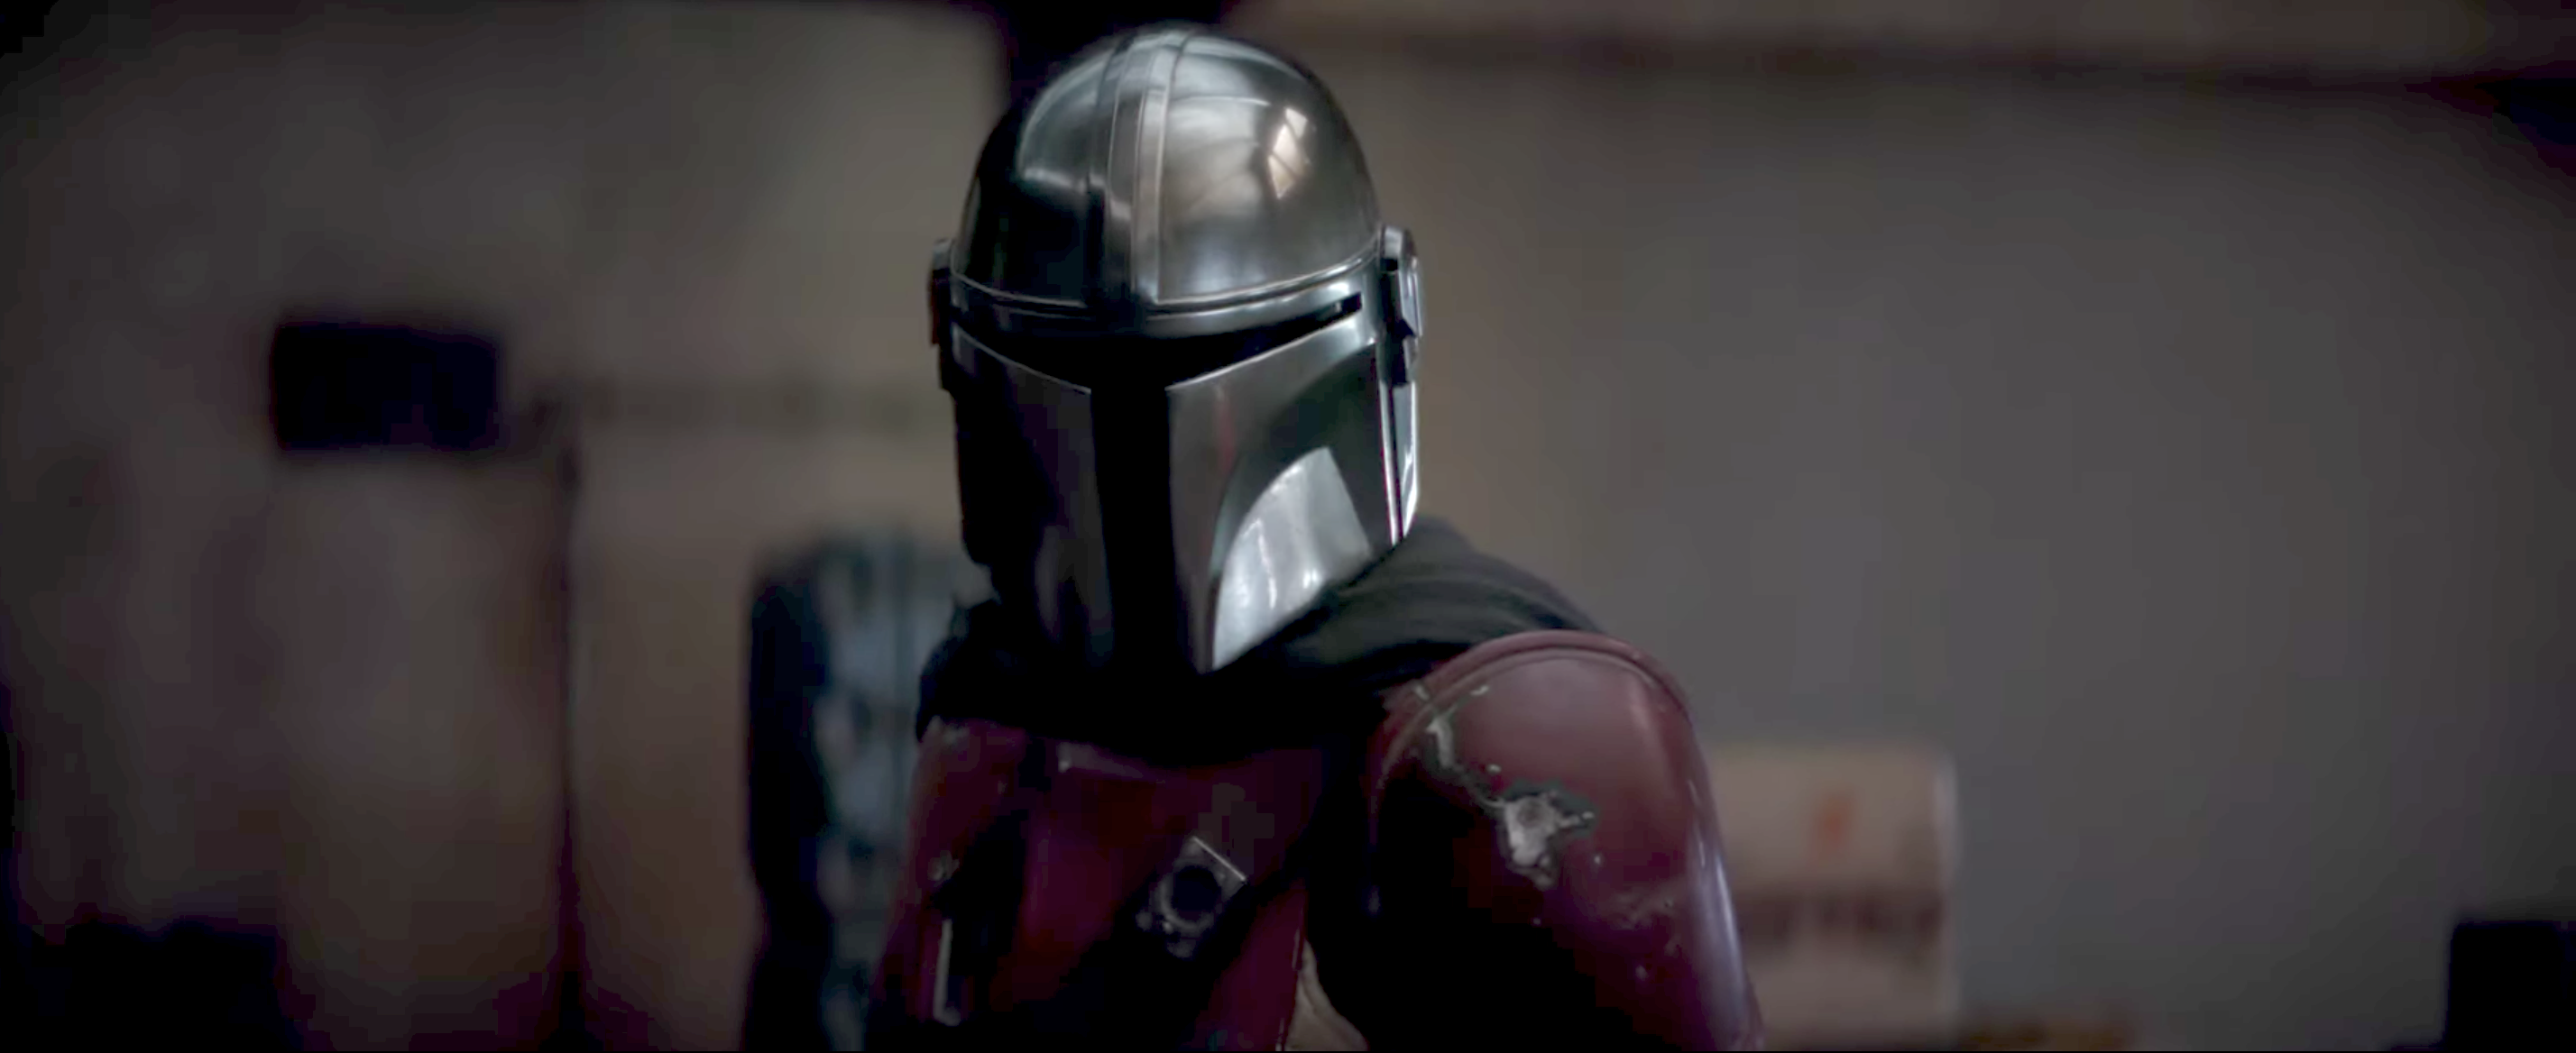 Boba Fett Just Made Another Appearance On The Mandalorian